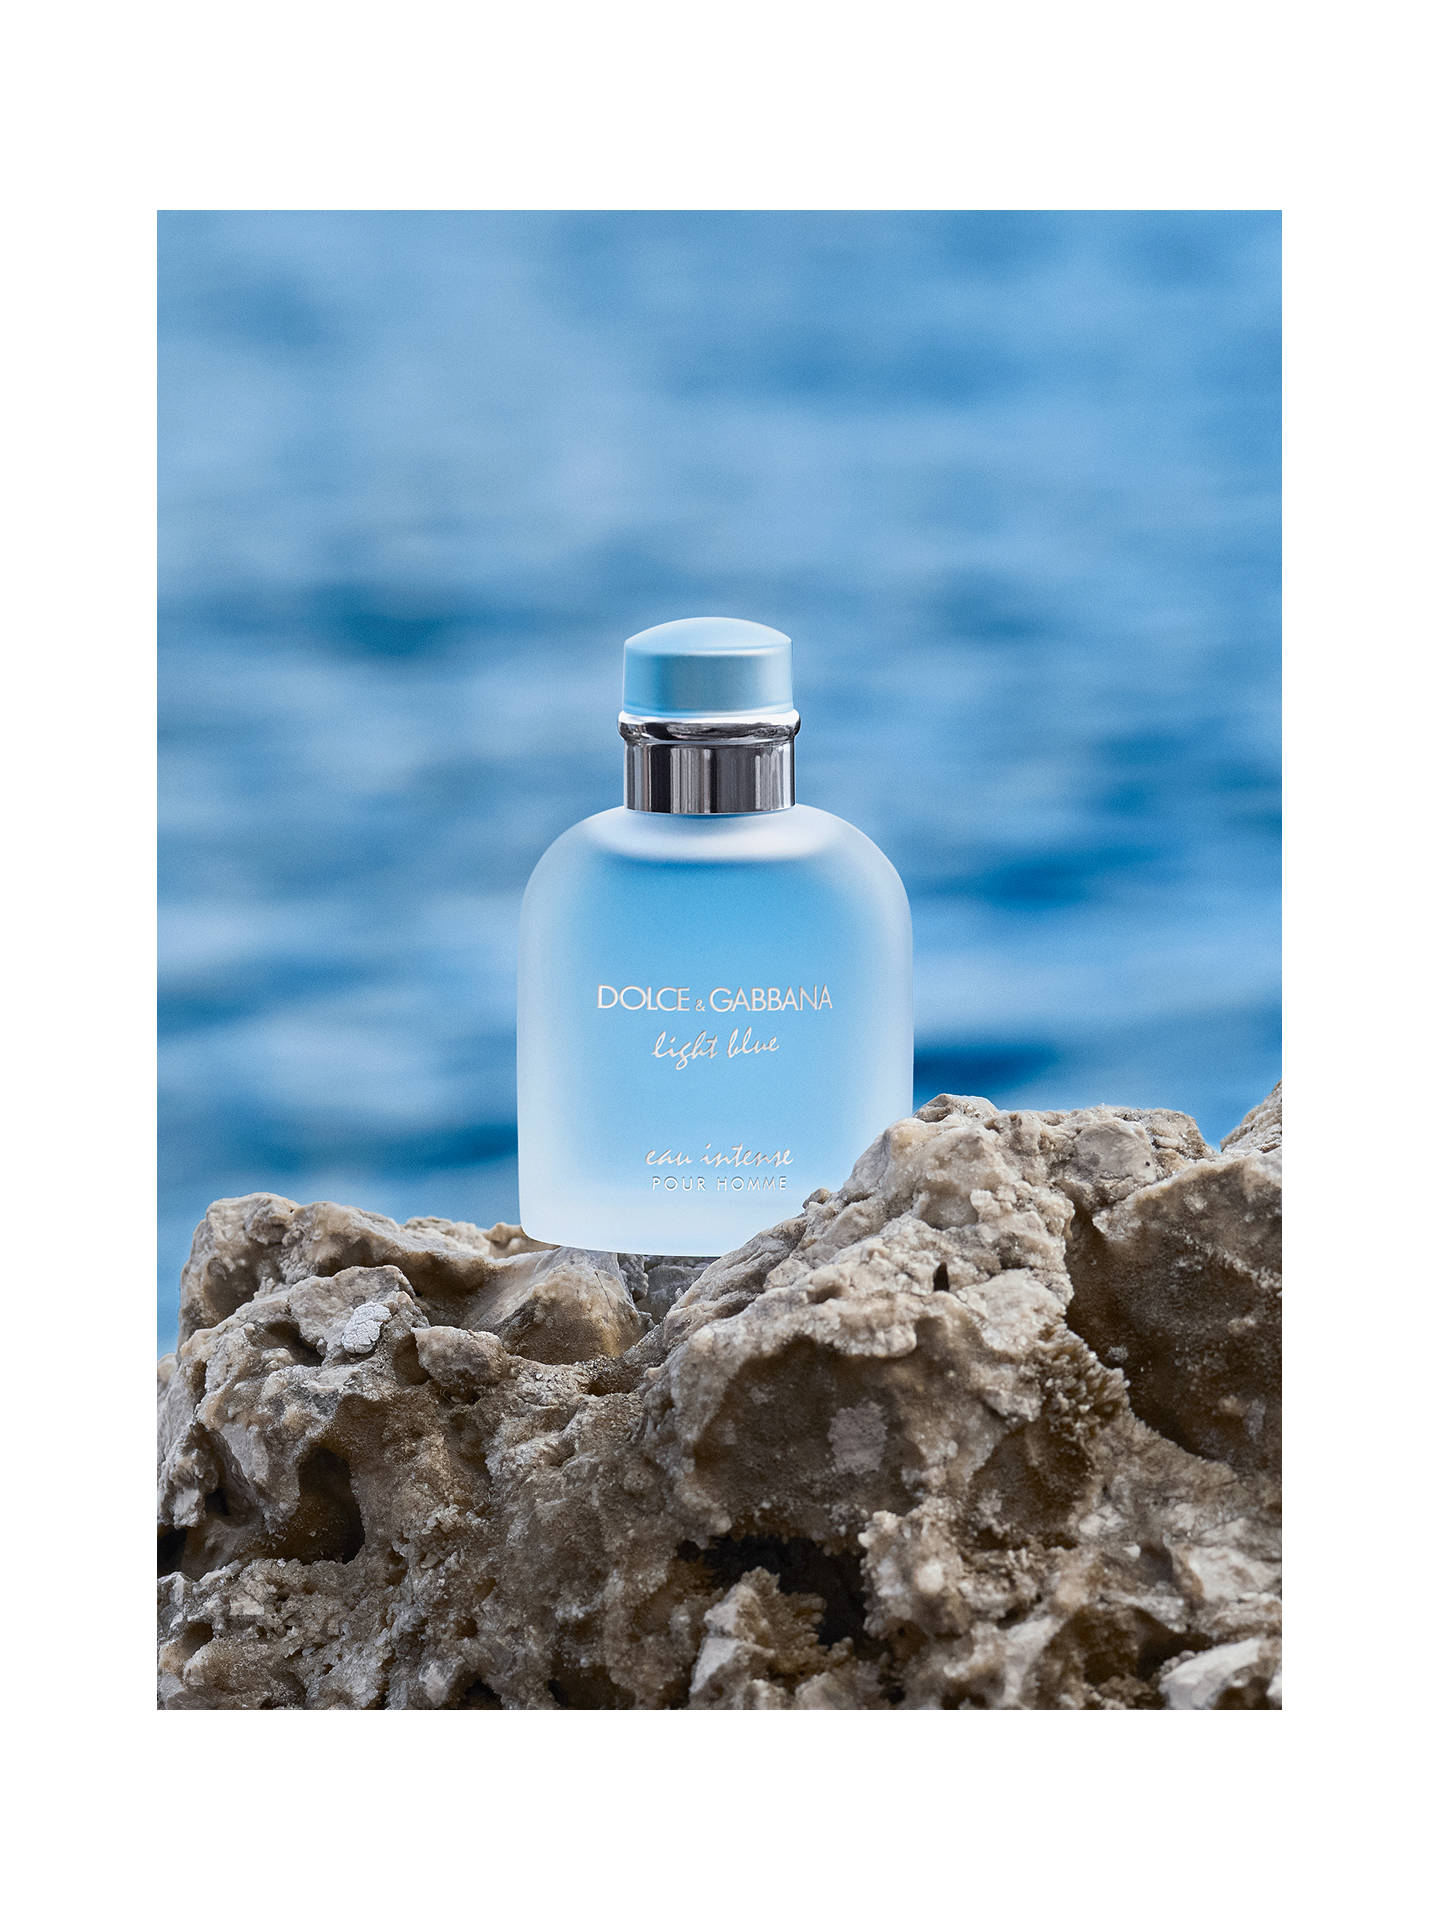 BuyDolce & Gabbana Light Blue Eau Intense Pour Homme Eau de Parfum, 50ml Online at johnlewis.com